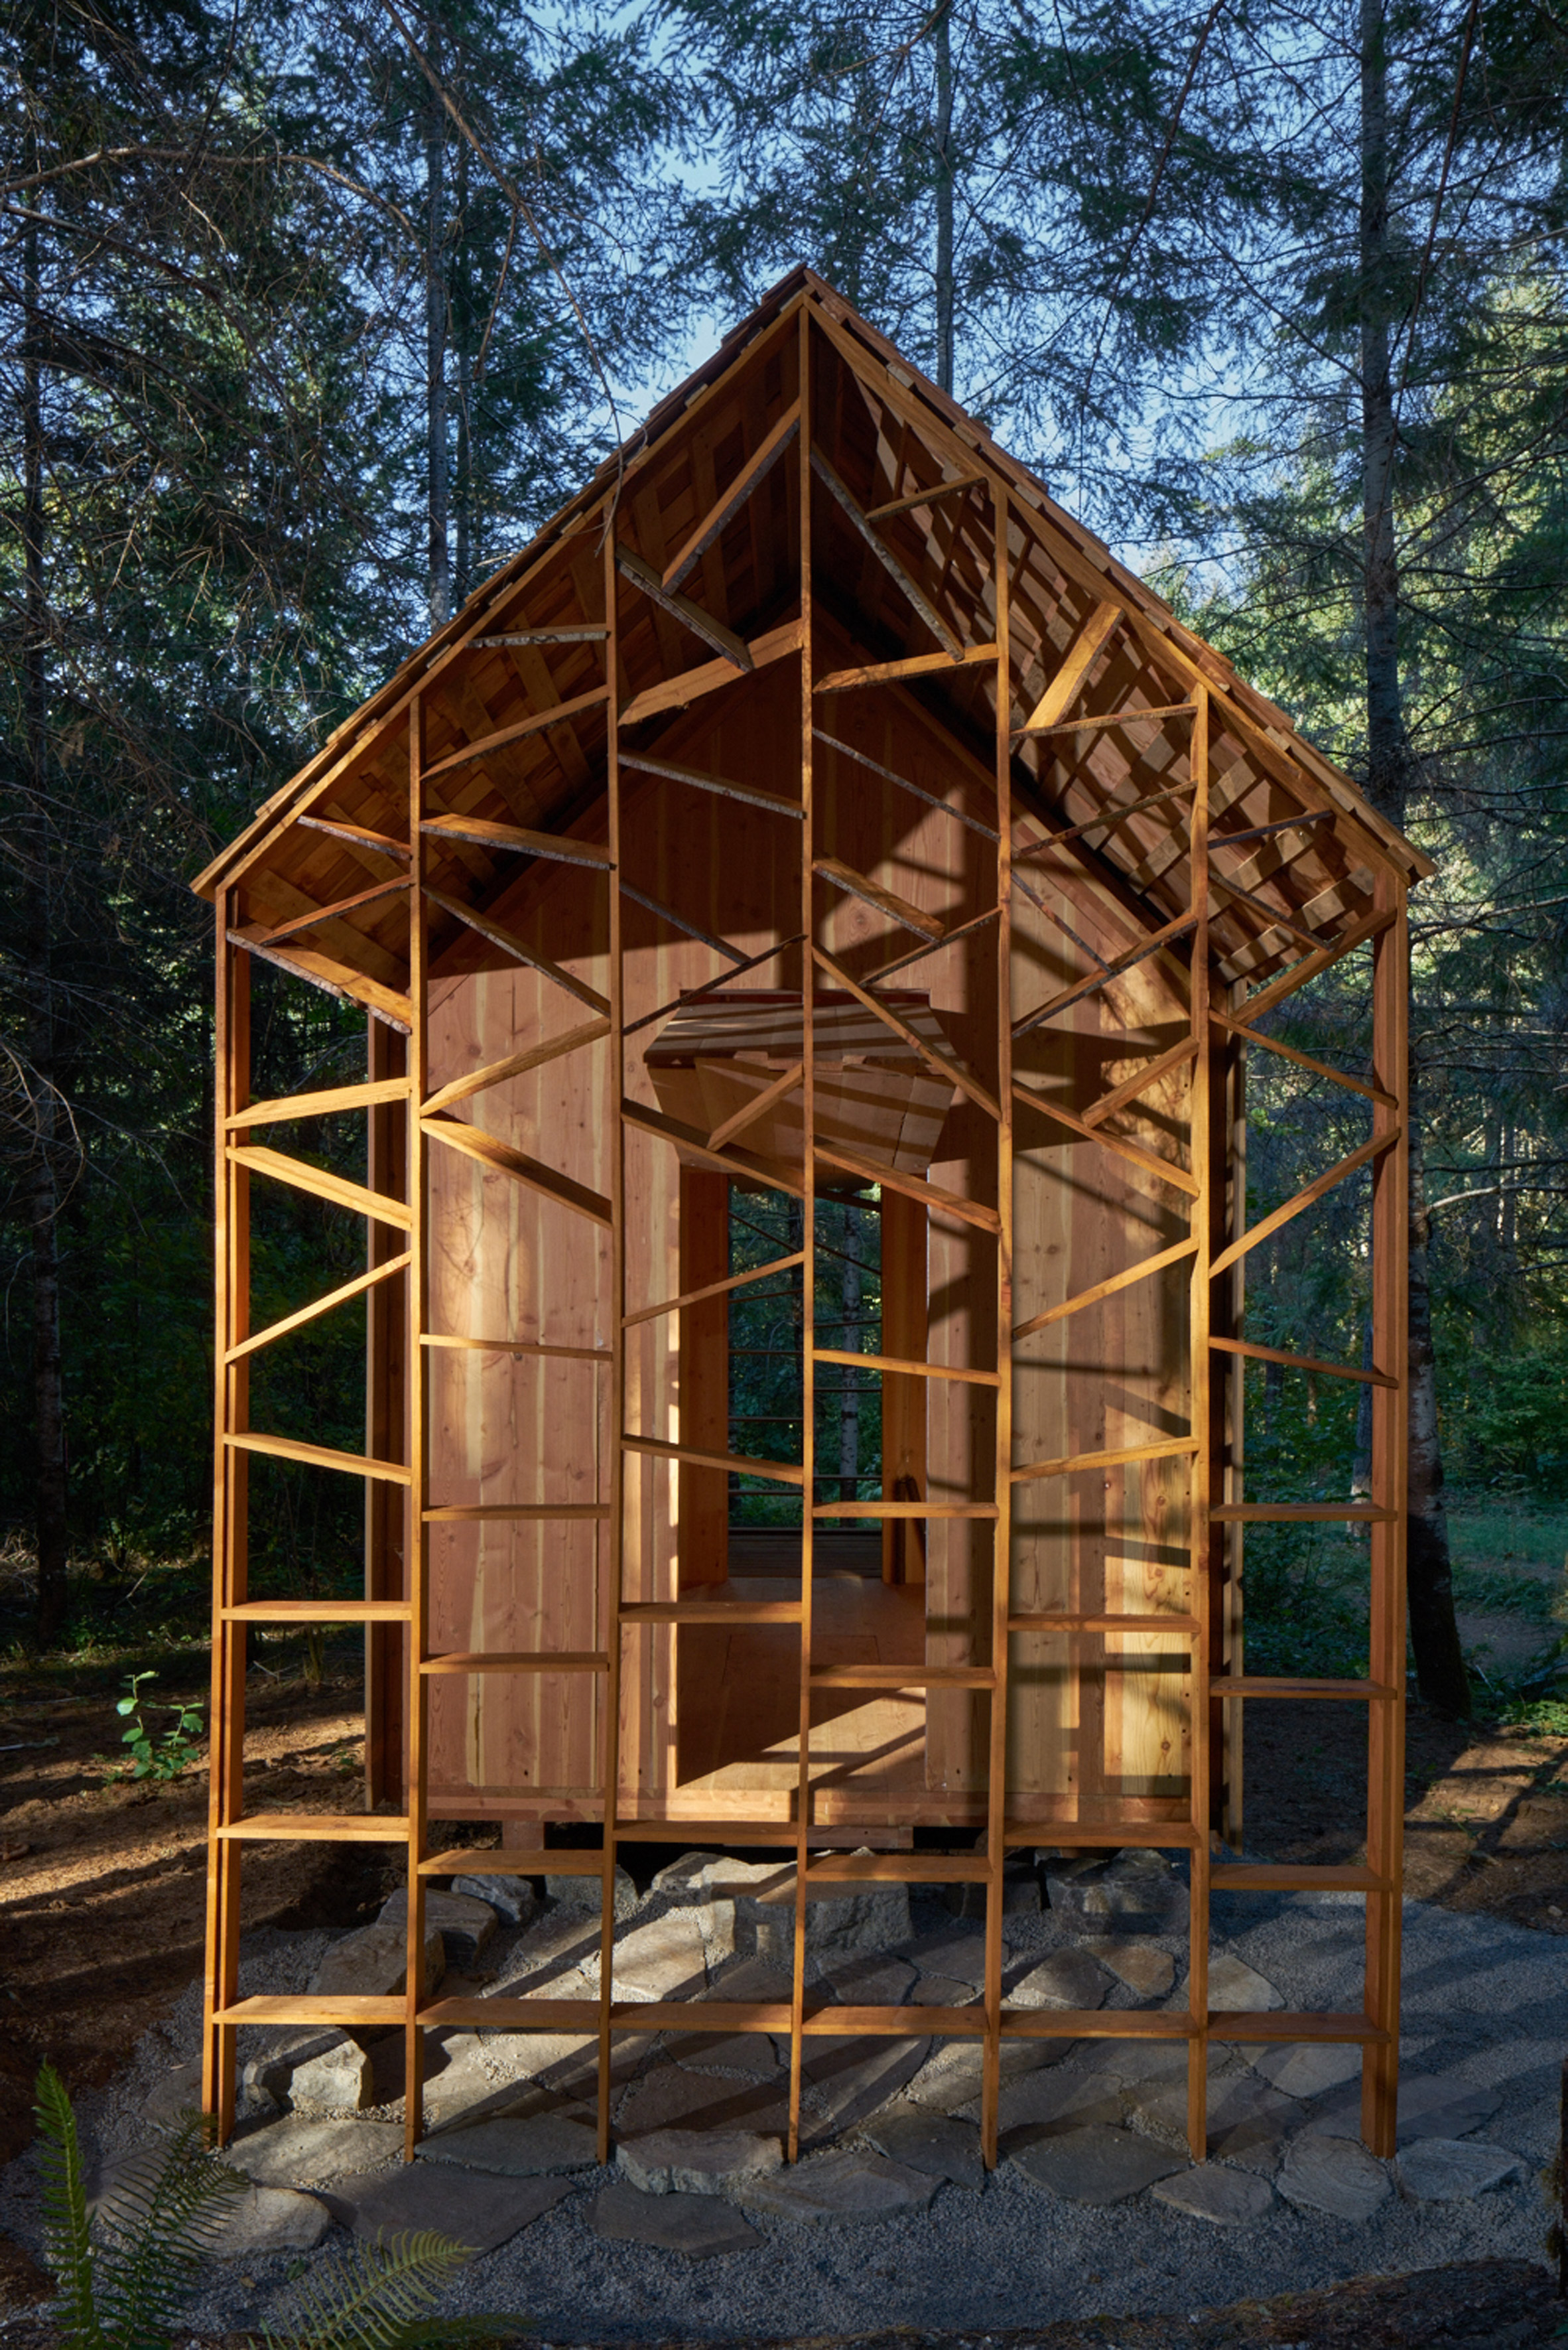 Architecture students use cross-laminated timber to build tiny classroom in Oregon forest